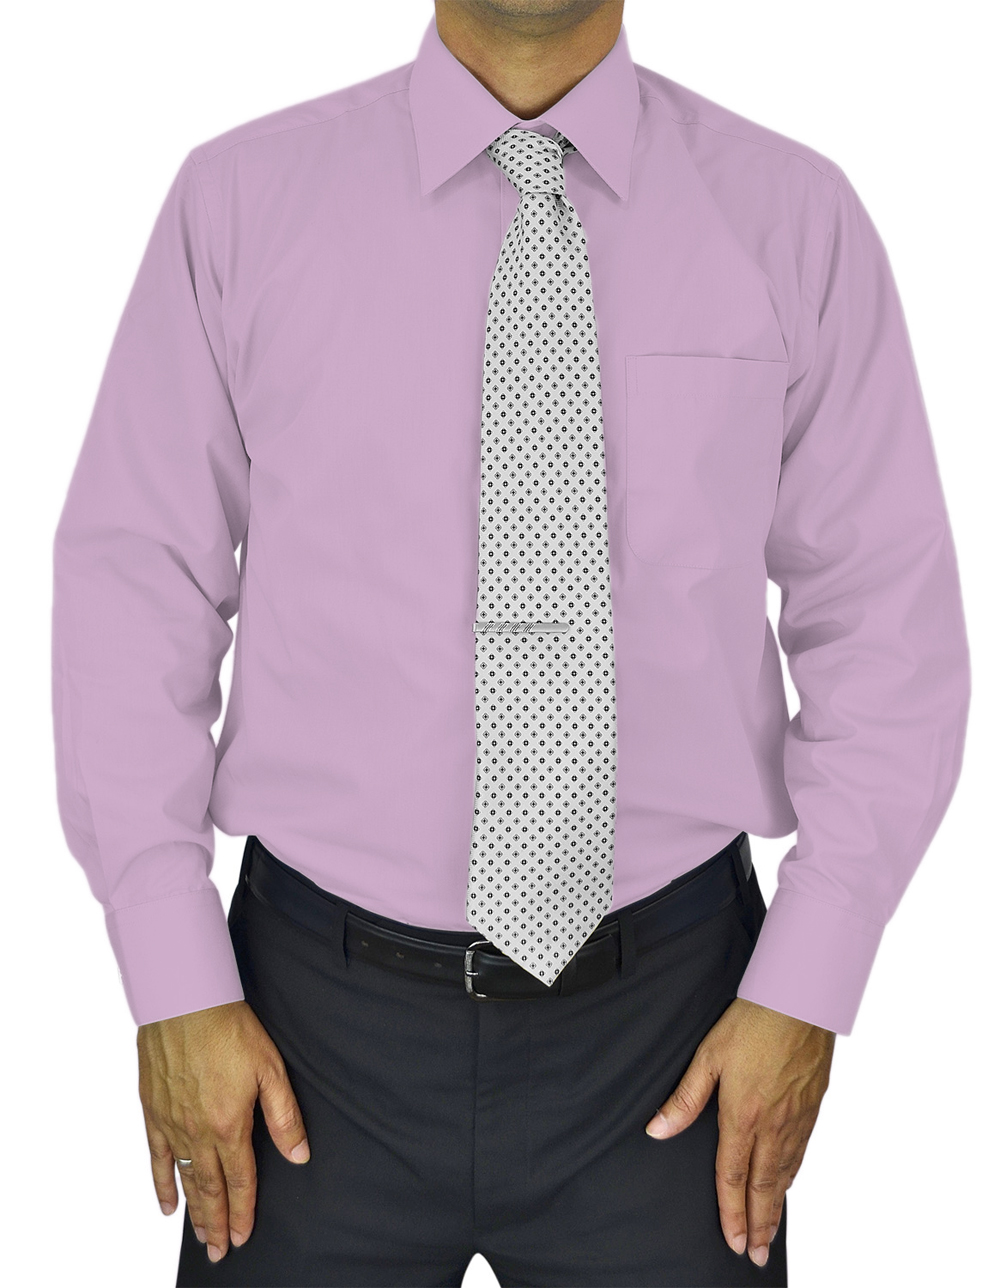 Mens Dress Shirt Slim and Regular Fit Office Casual French Cuff Moda Di Raza - Lavender 14.5